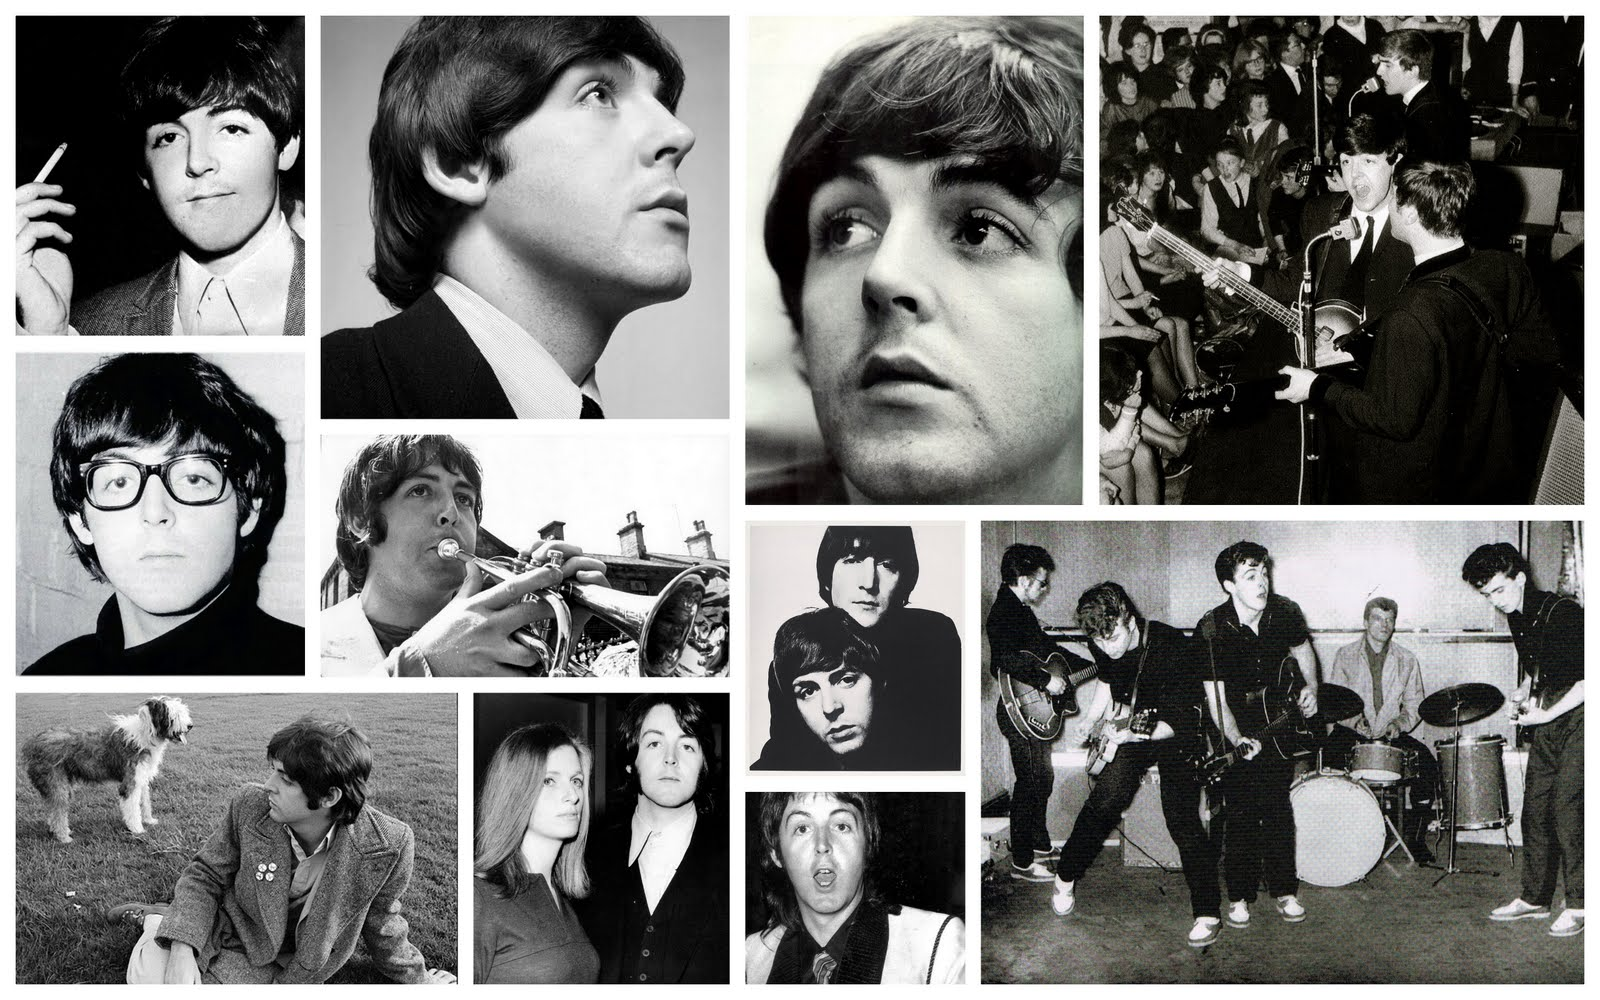 Today Is The Birthday Of Legendary Beatle And Musician Paul McCartney Cute Turns 69 Can You Believe It Born In 1942 On June 18th To James